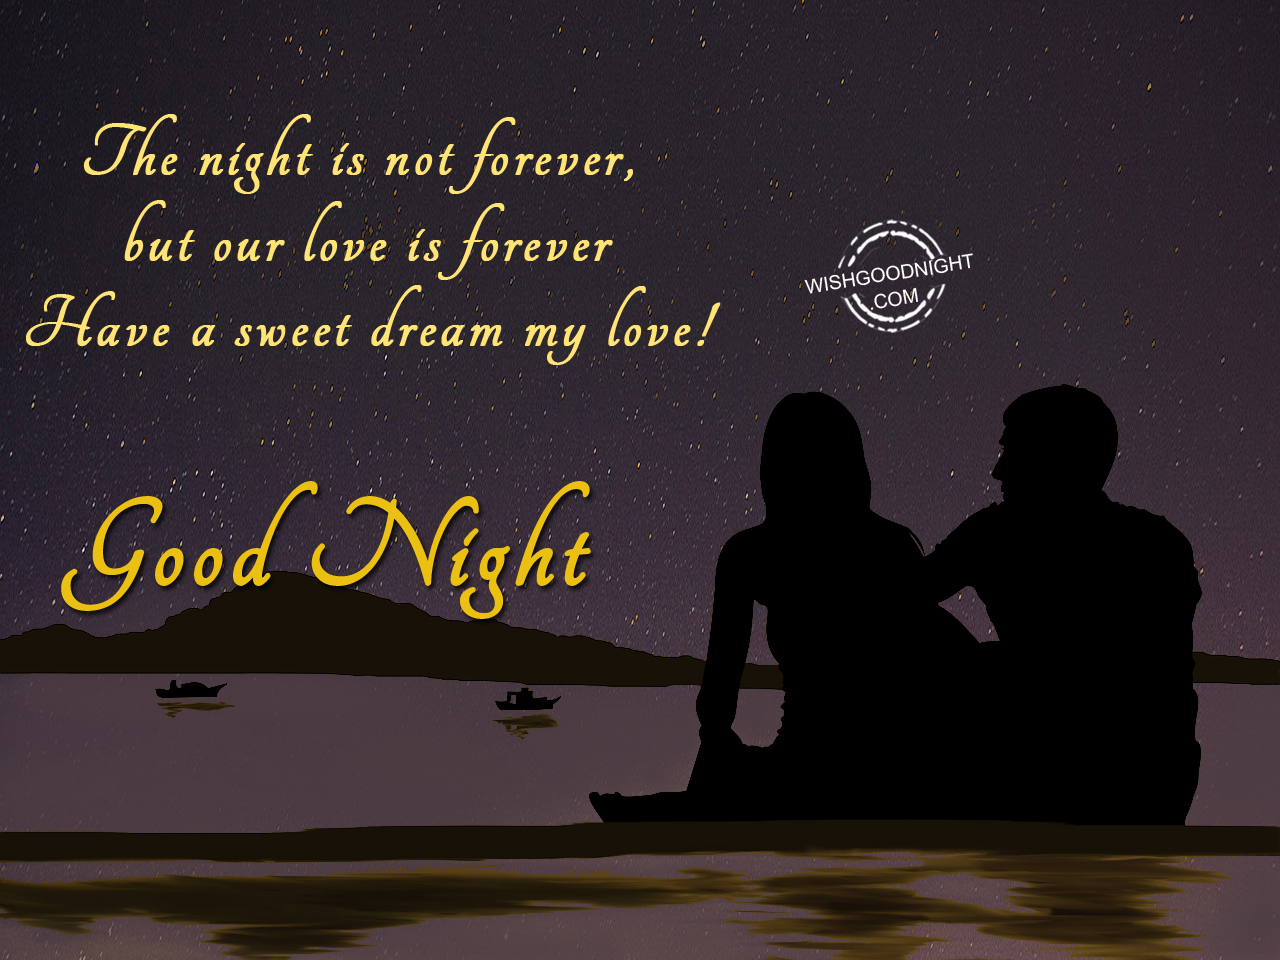 Good Night Wishes For GirlFriend - Good Night Pictures